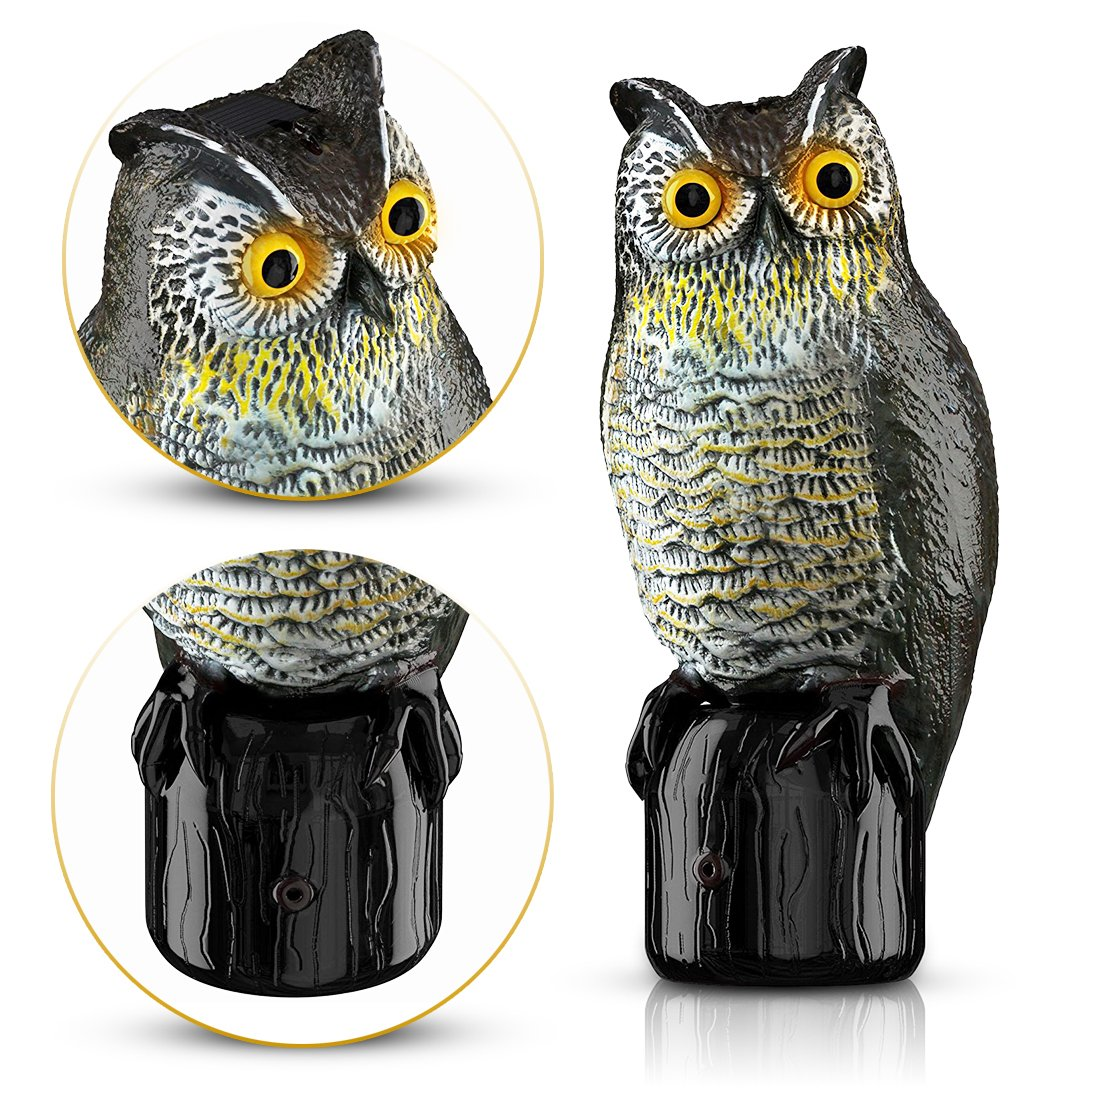 New Garden Waterproof Solar Powered White Grey Owl Light Up Stake Yard Decor Decoration